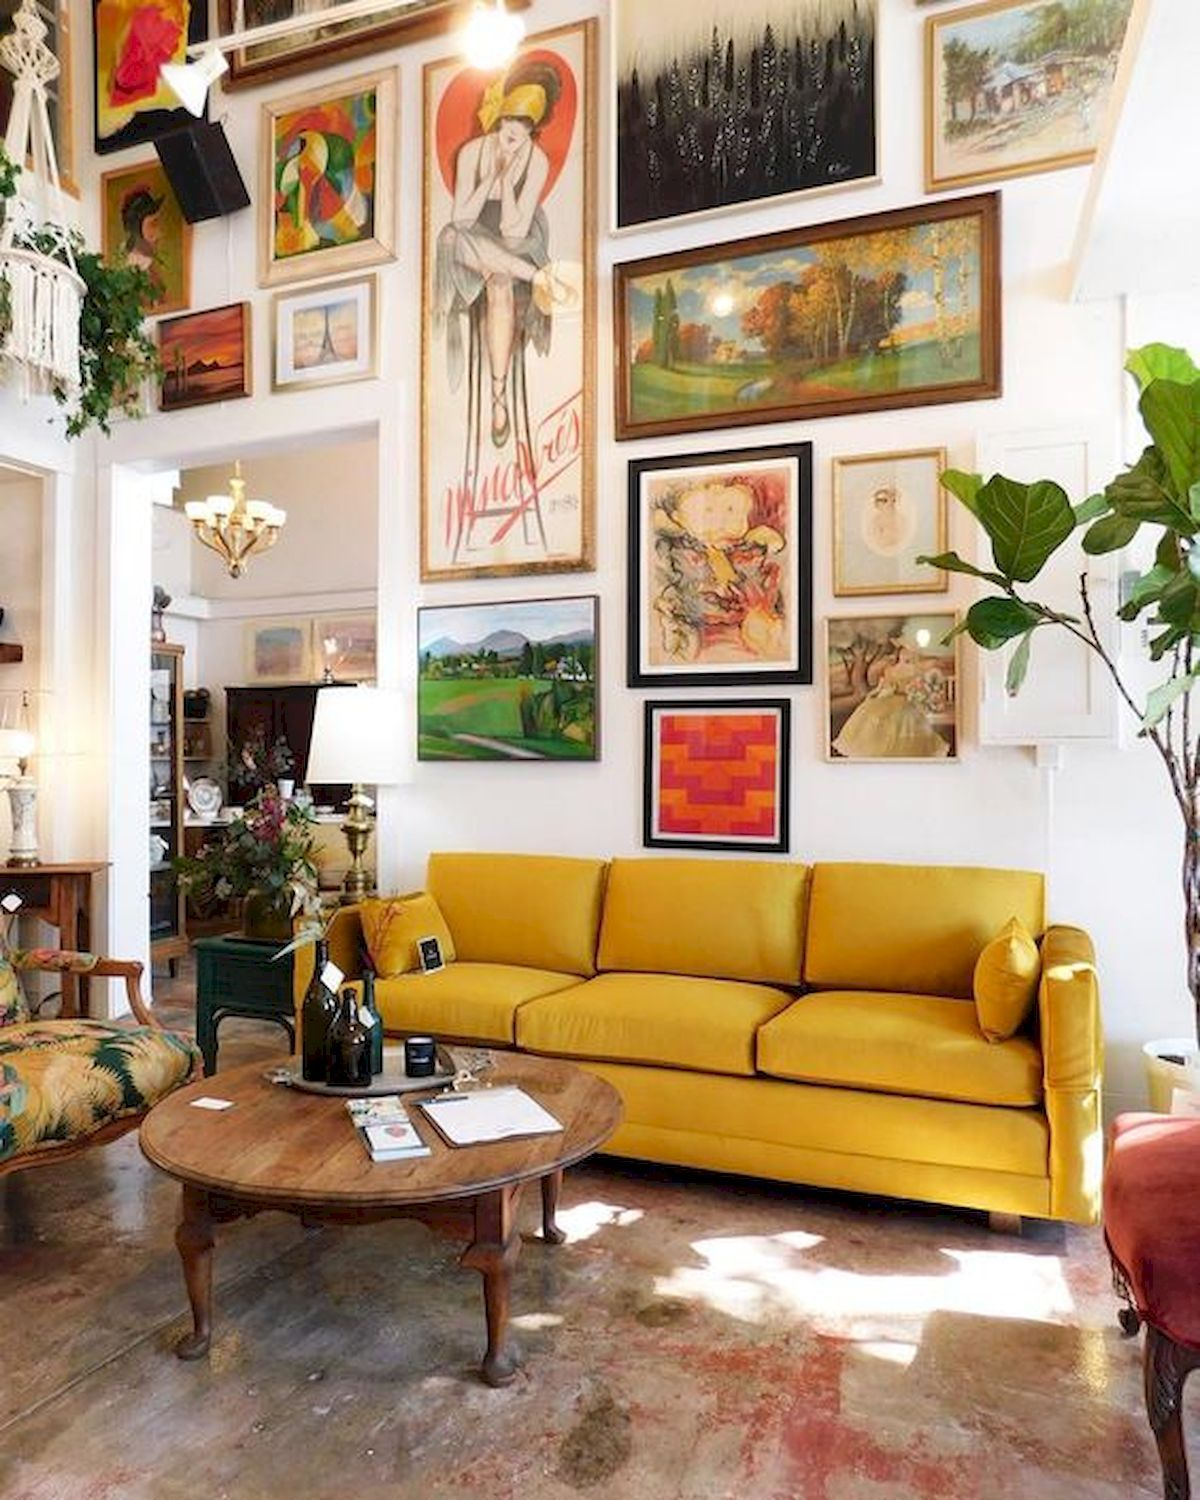 50 Stunning Living Room Wall Art Ideas And Decorations Buy Home